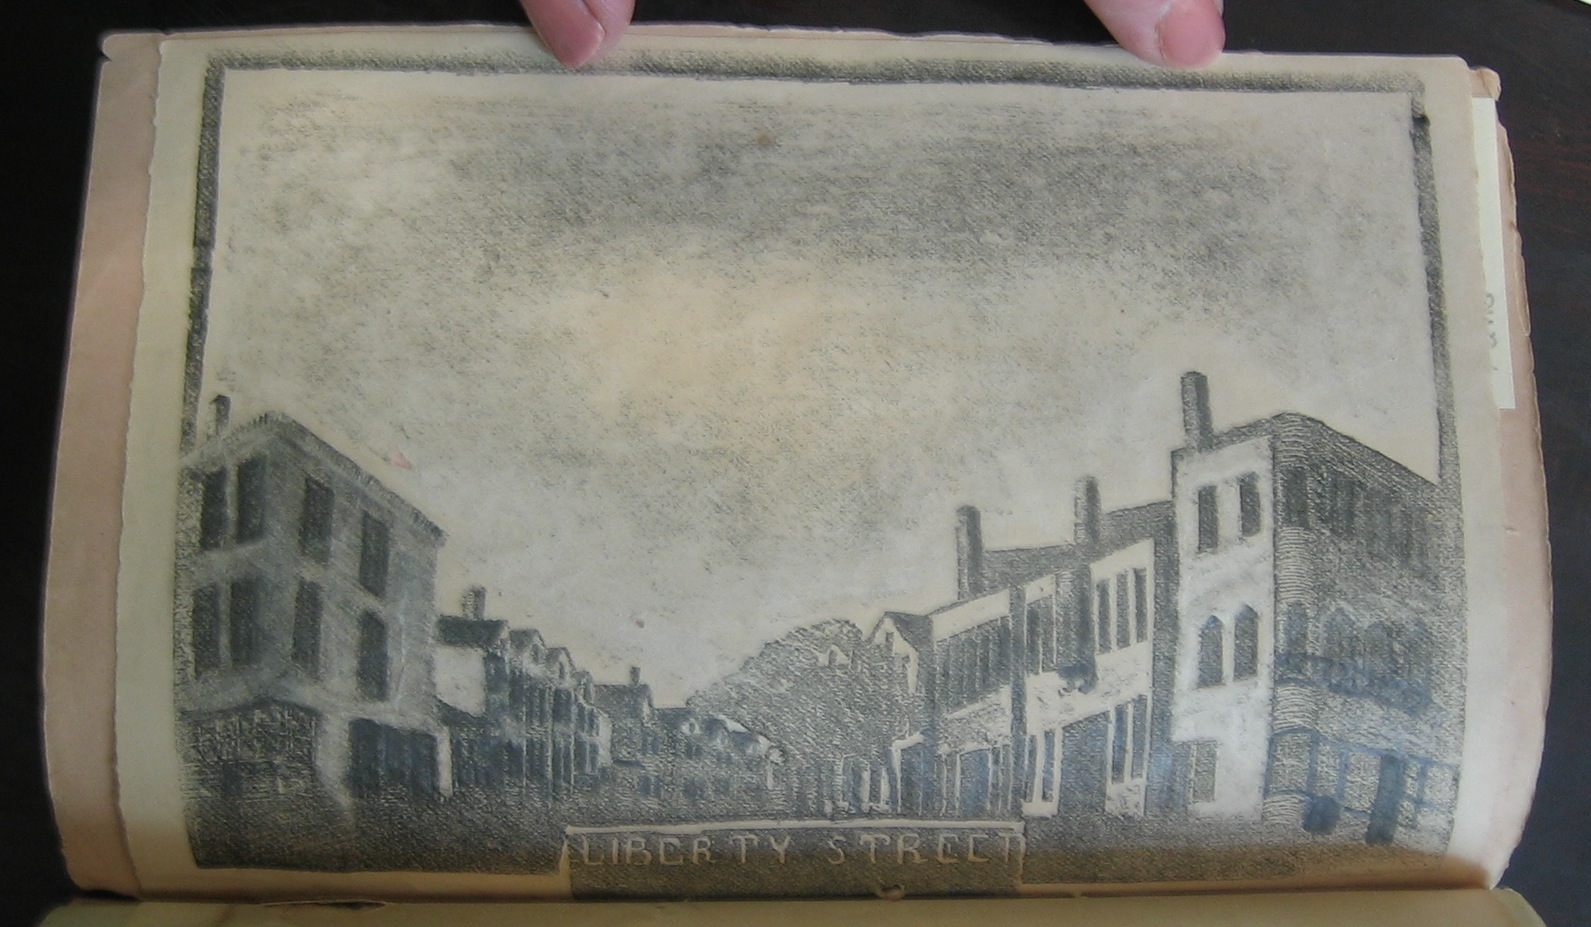 Many of Cook's woodcut illustrations (this one heightened with pencil) are useful contemporary depictions of Salem street scenes, such as this view of Liberty Street.  William Cook, The Columbia (Salem, Mass., 1863) (Barrett PS586 .Z93 C673 C6 1863)